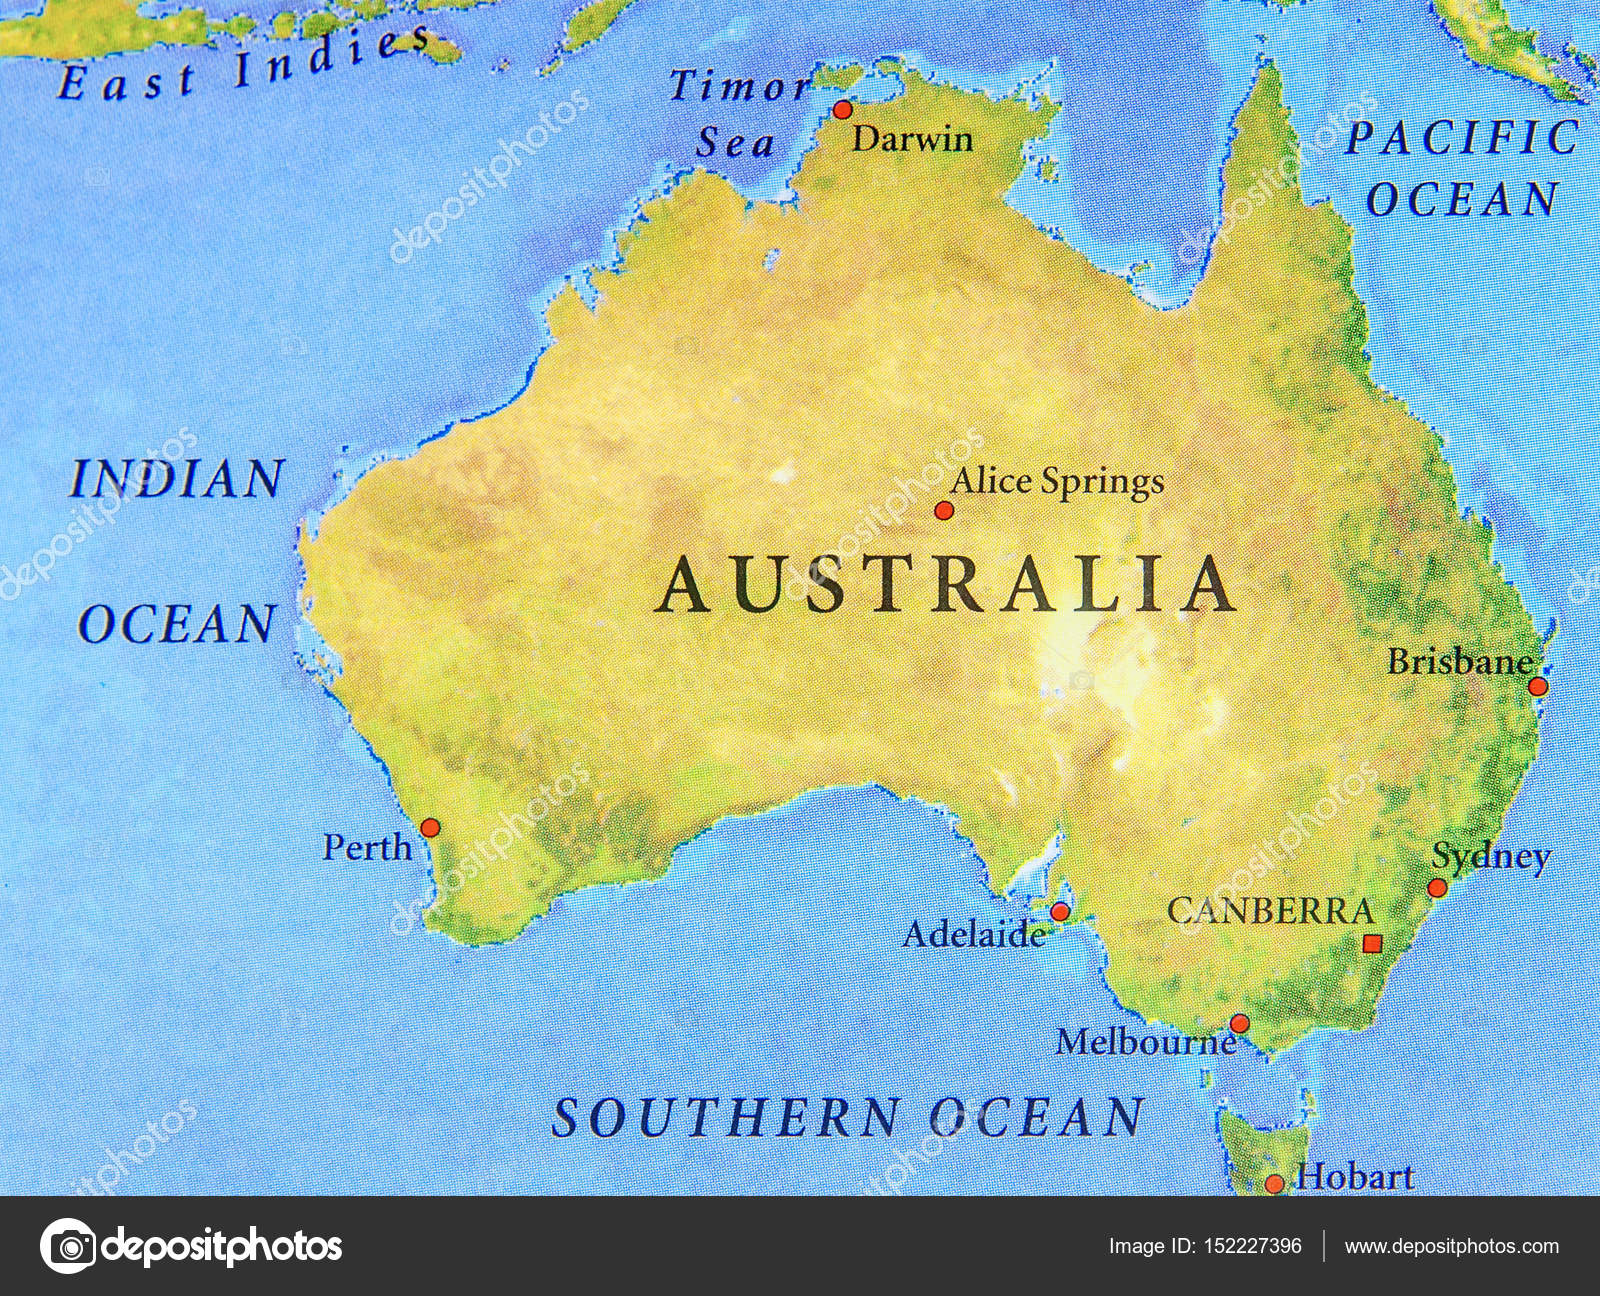 Australia Map With Main Cities.Geographic Map Of Australia With Important Cities Stock Photo